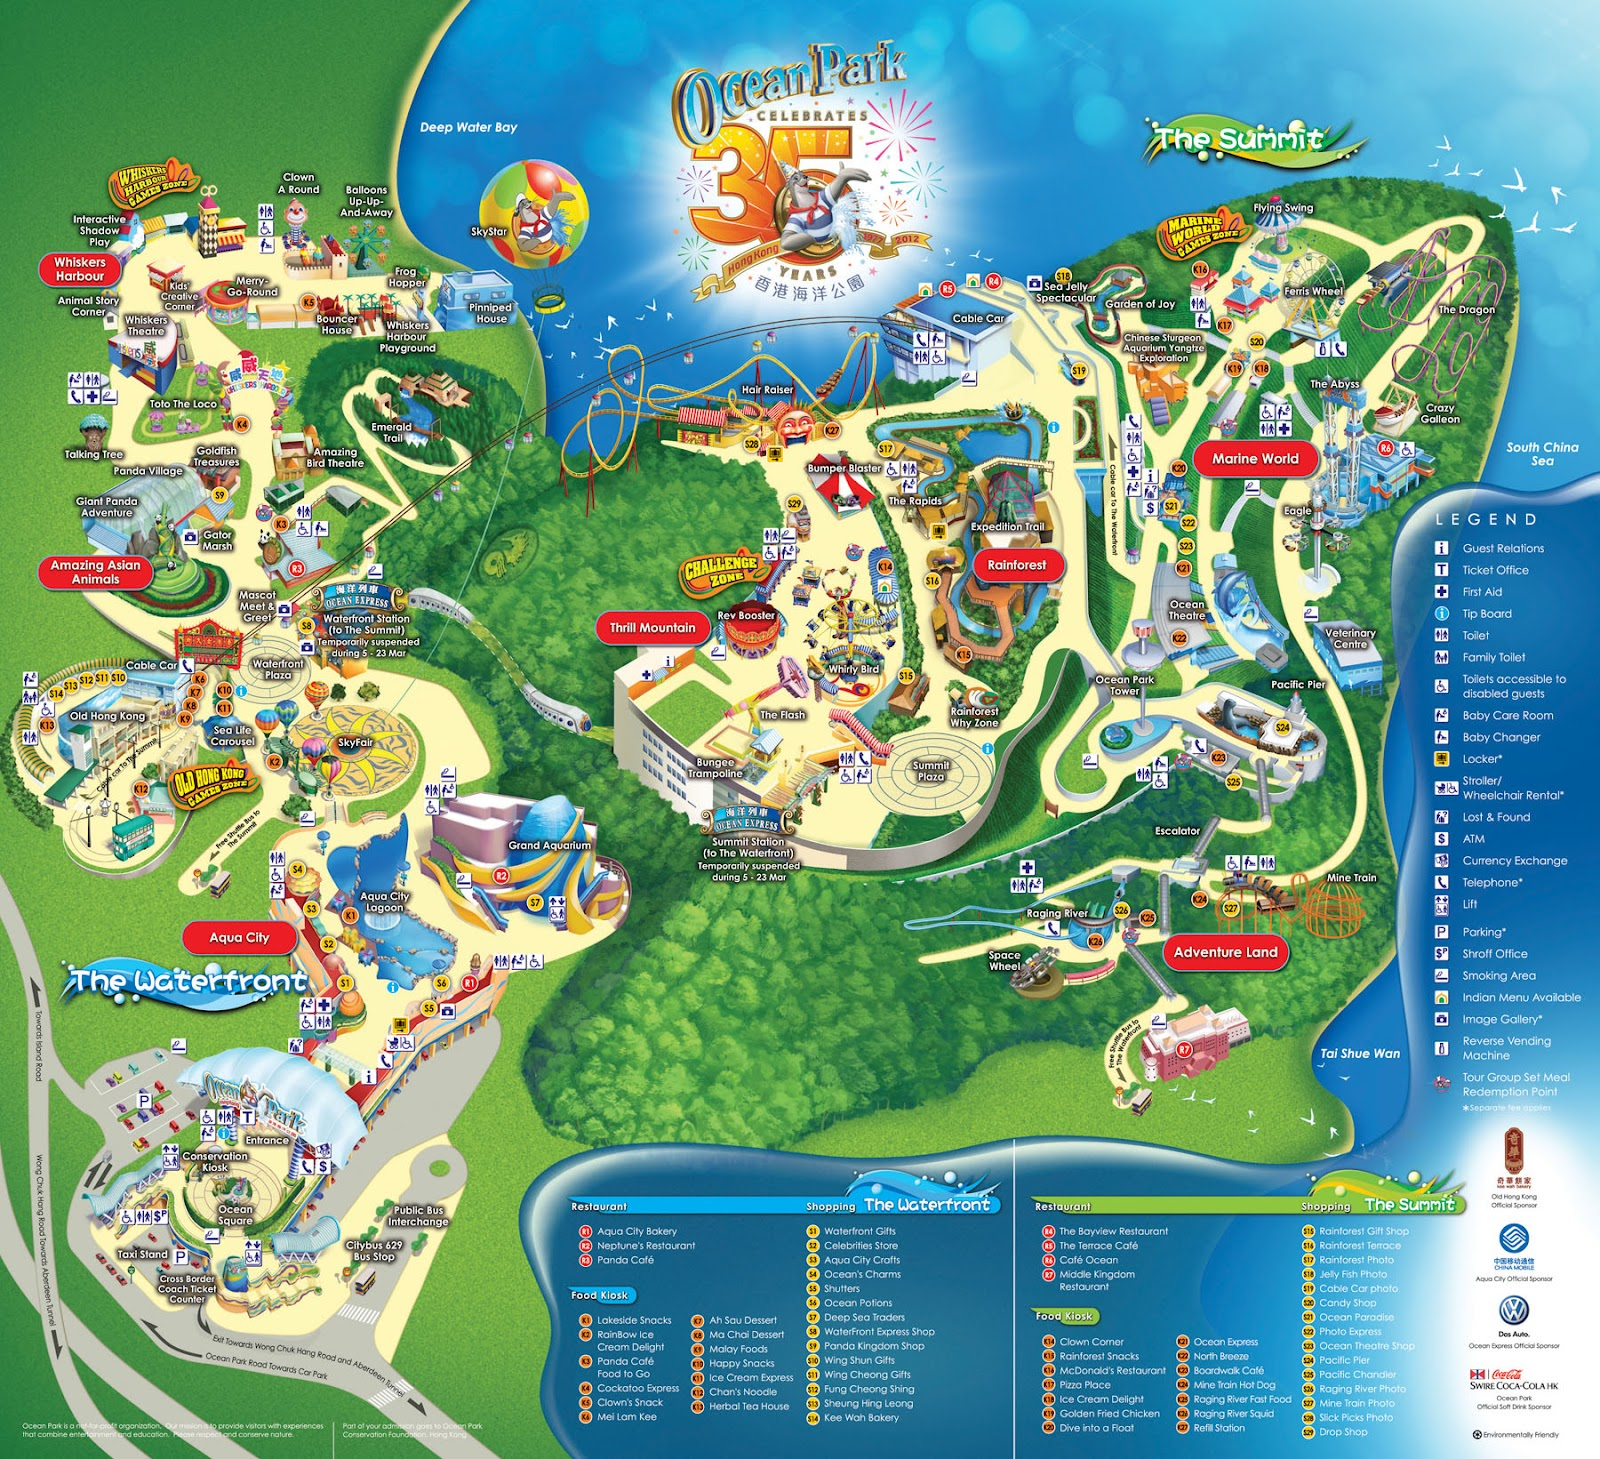 swot of ocean park hk Chapter two: case selection- ocean park hong kong 11 i information  collection - web research 13 - site visit 14 - interview 21 ii swot analysis of  ocean.